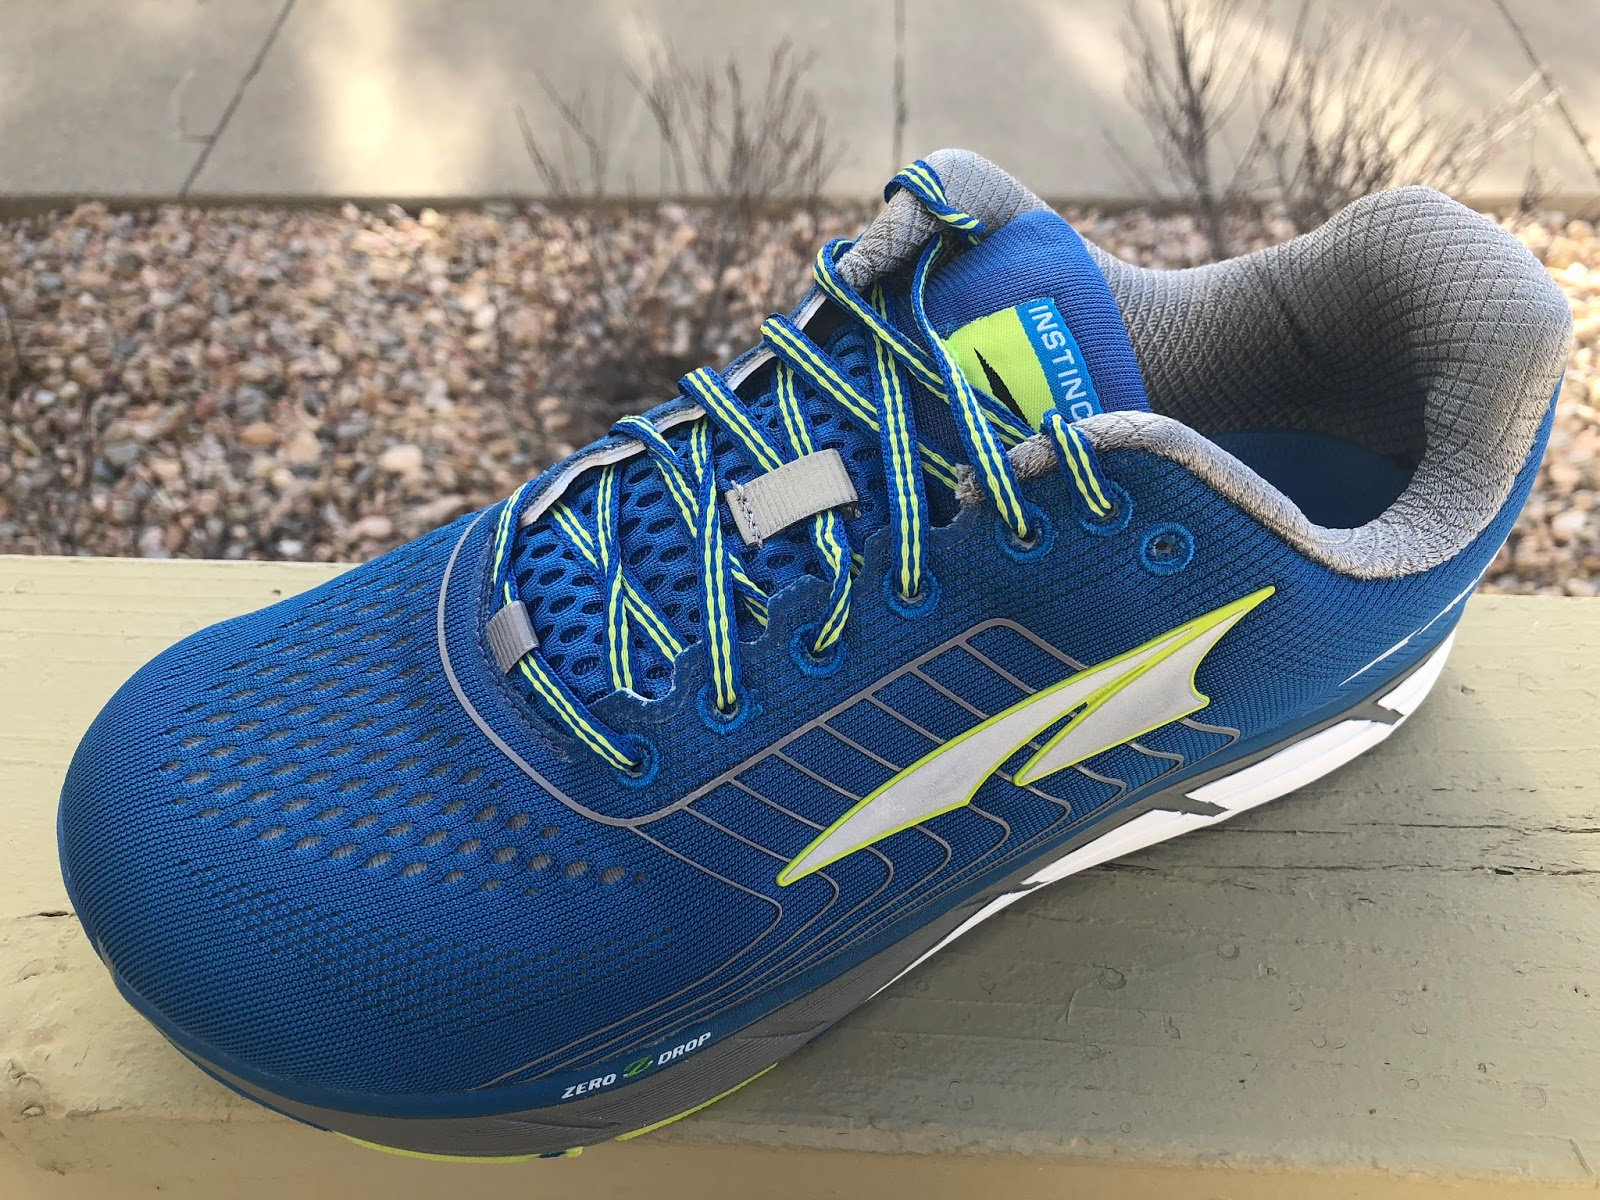 Sam: The Instinct is Altra's original road shoe. With version 4.5 the big  news is that it gets a soft engineered mesh upper for the first time.